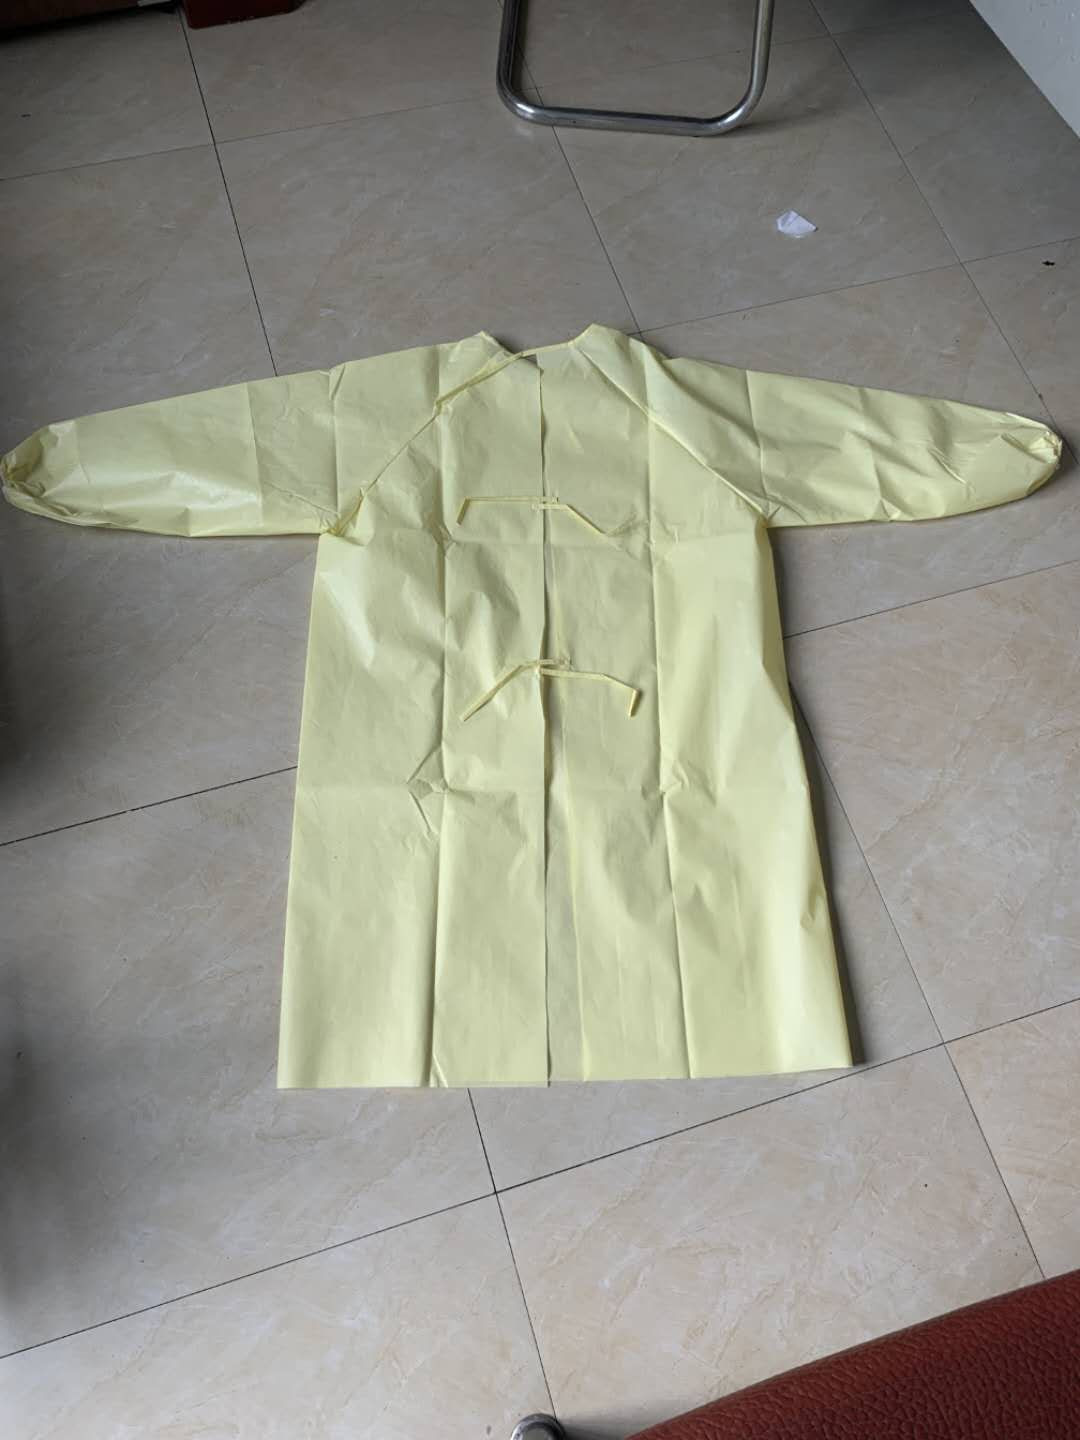 Disposable medical gown、Disposable civil isolation gown